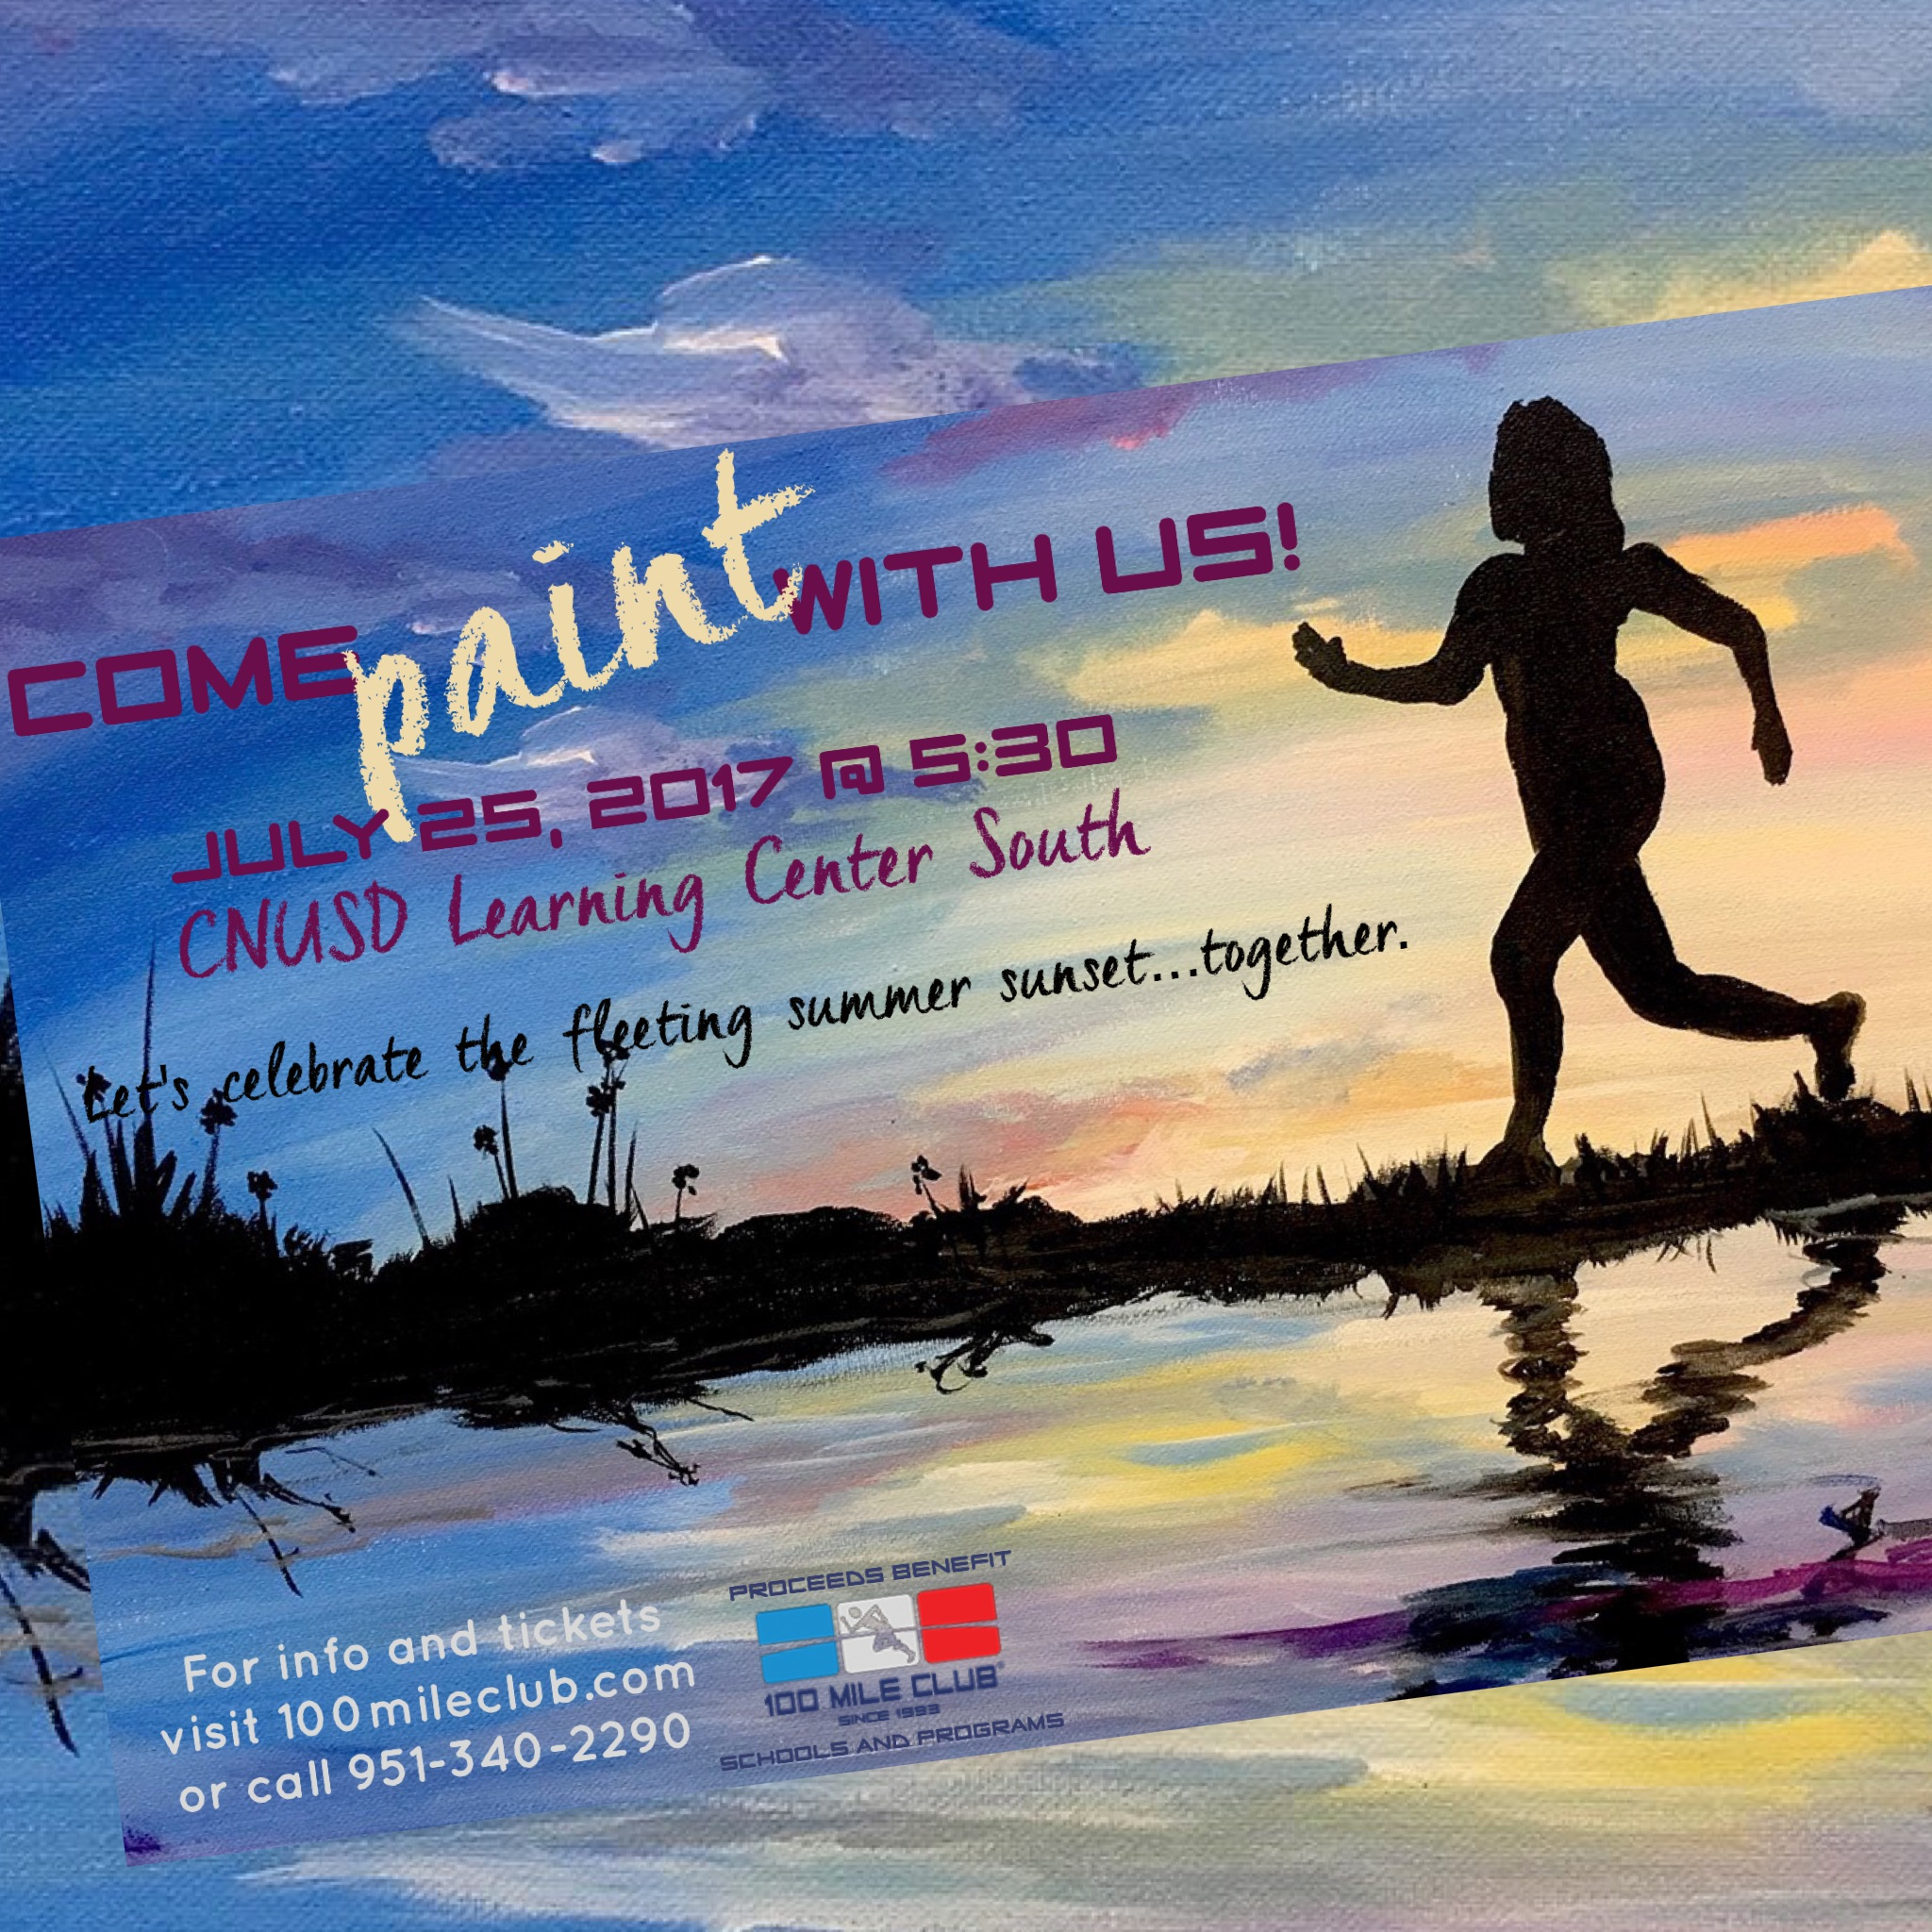 Let's Paint Together and Celebrate Summer